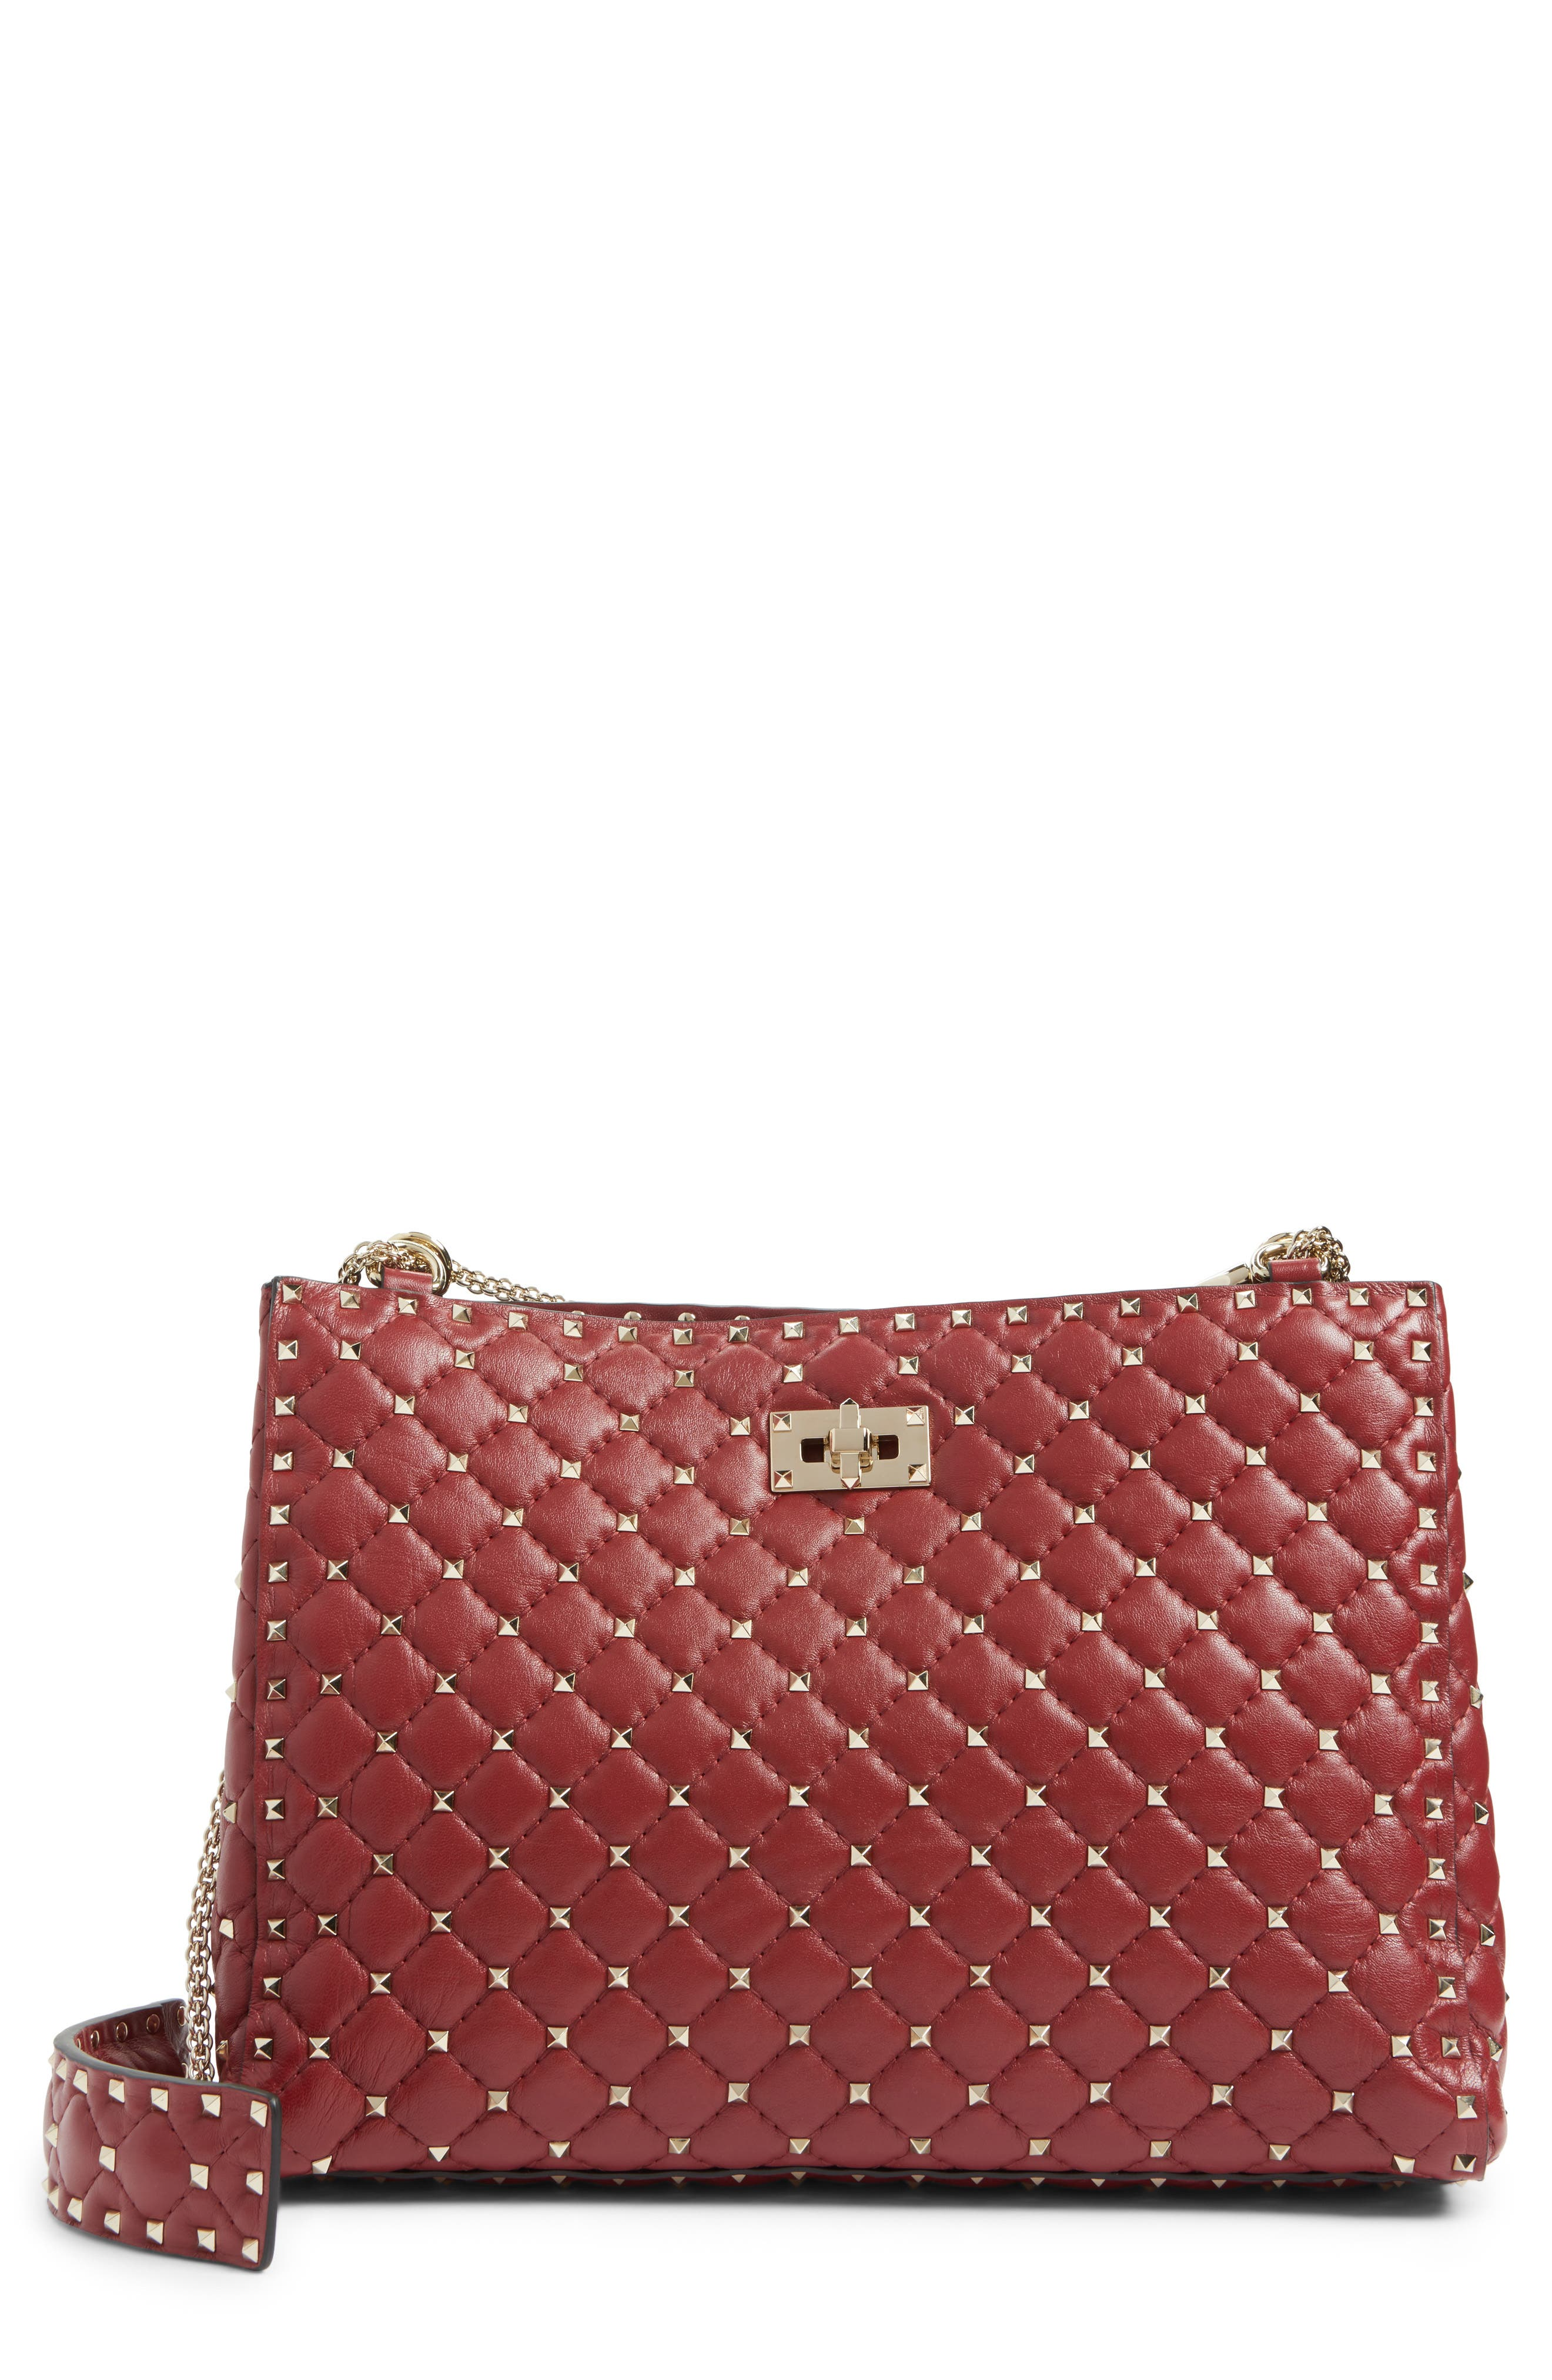 Rockstud Spike Quilted Lambskin Leather Shoulder Bag,                             Main thumbnail 1, color,                             ROSSO